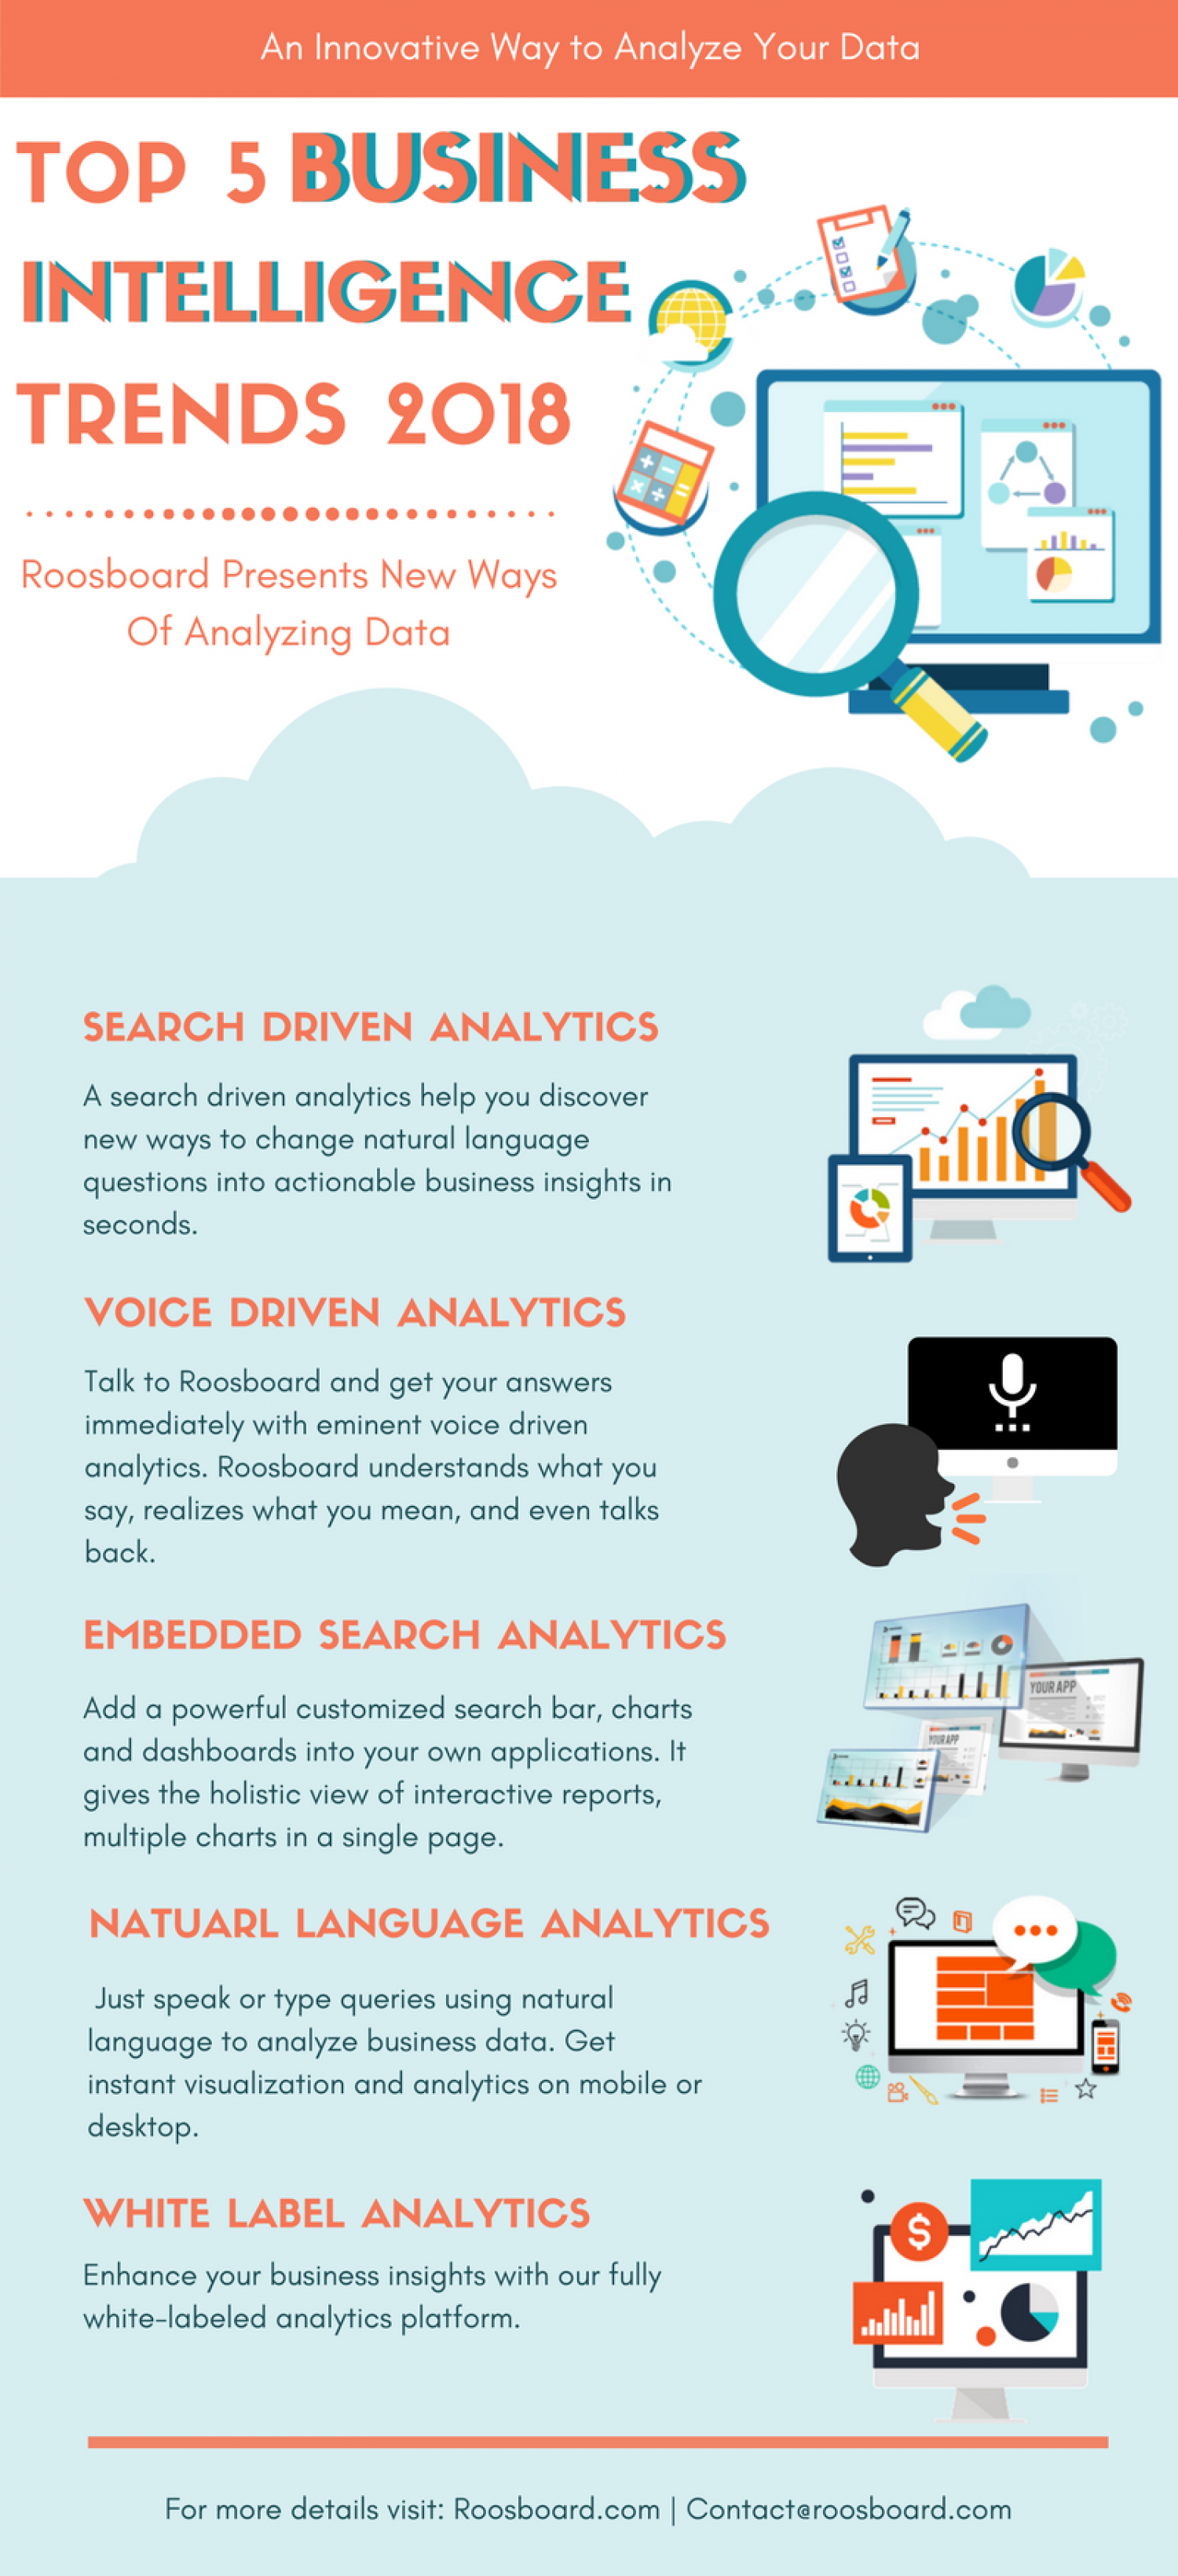 Top 5 Business Intelligence Trends 2018   Roosboard.com Infographic